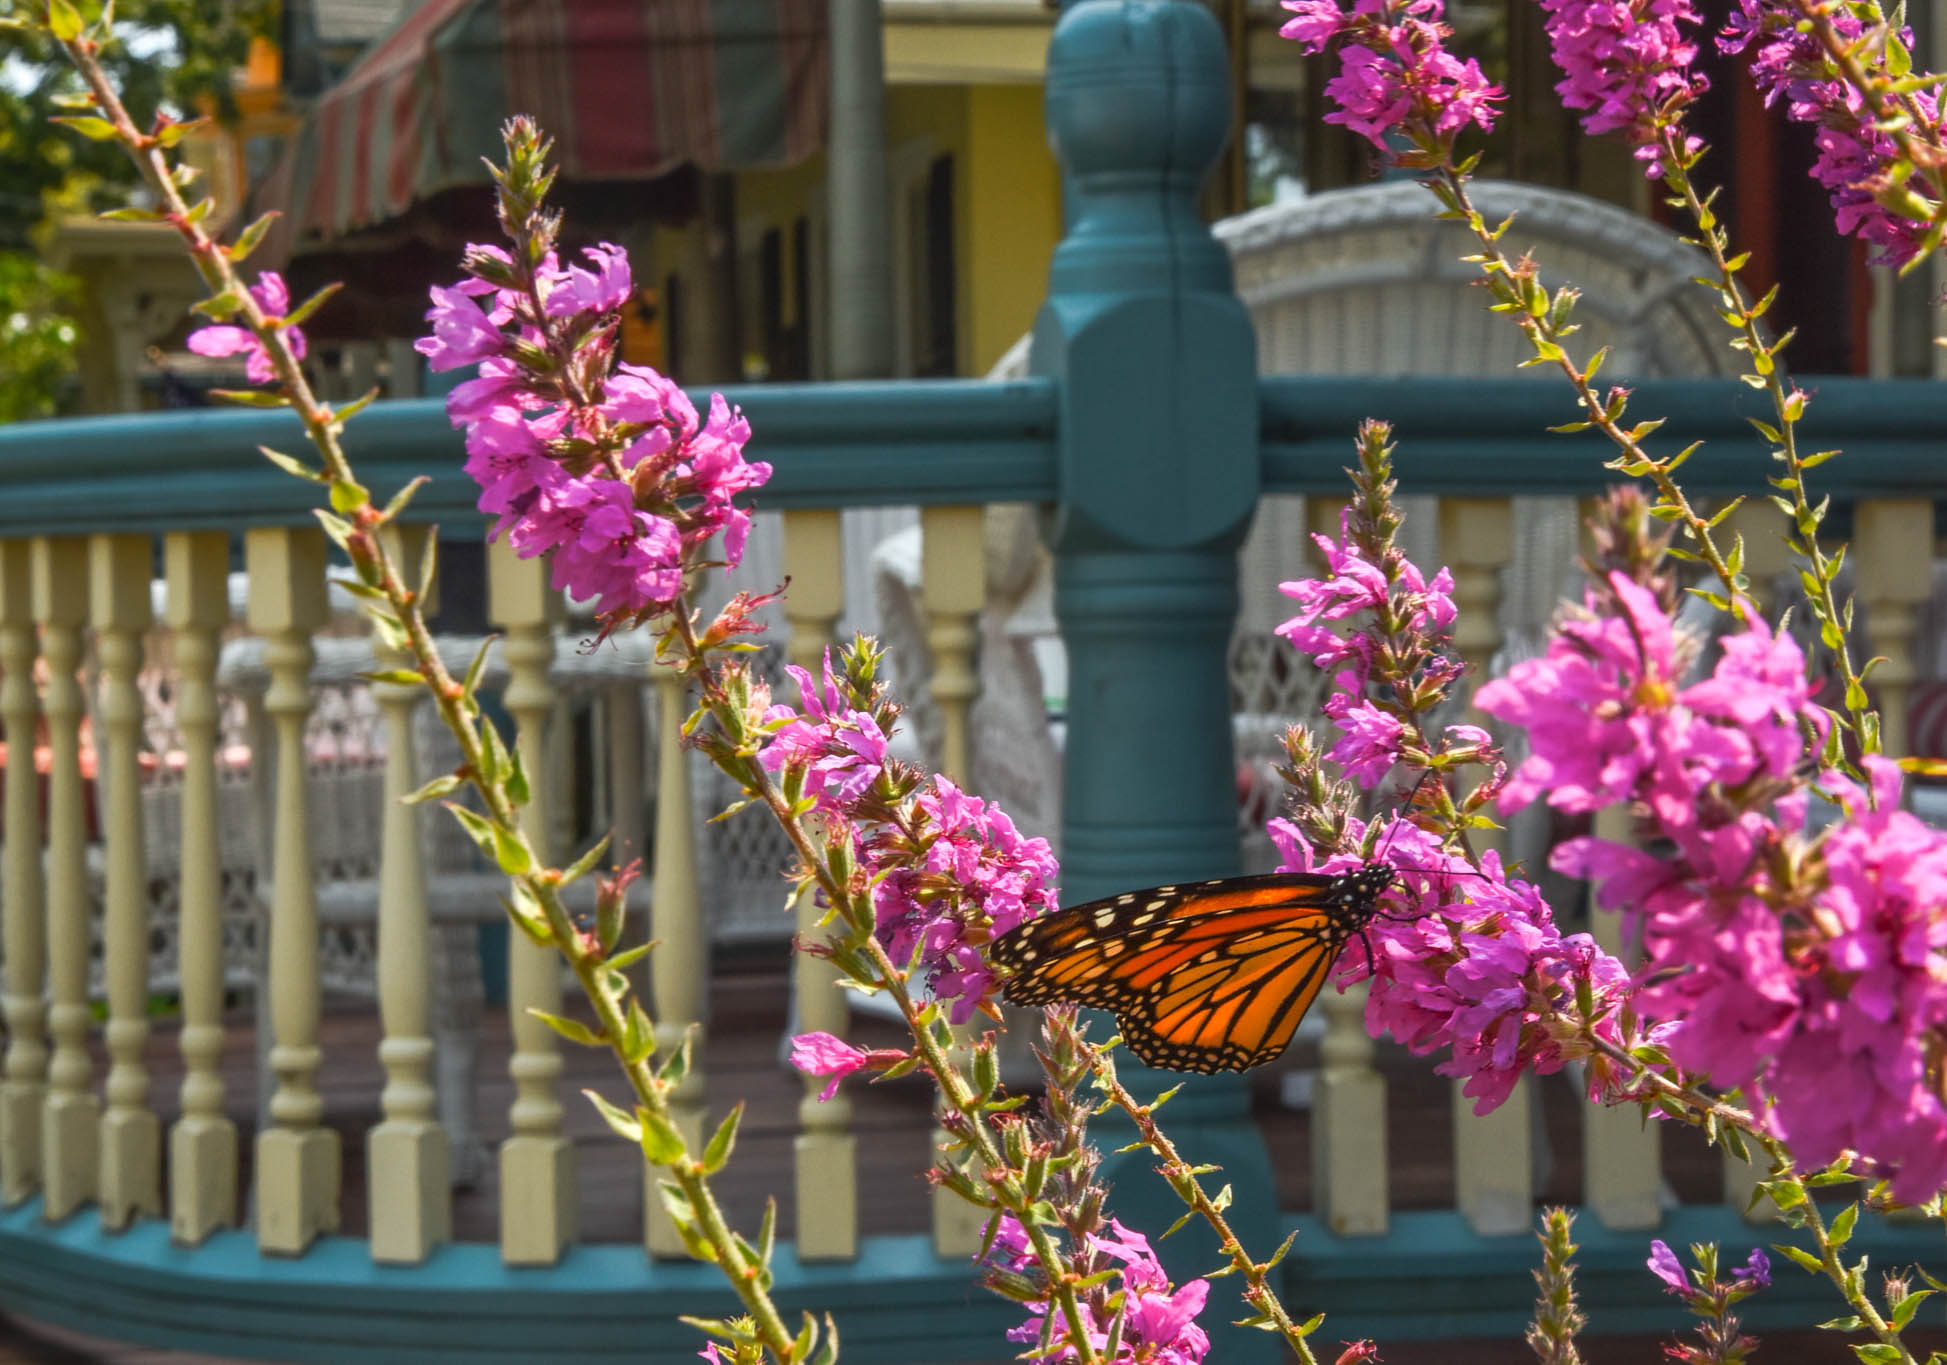 Chasing A Butterfly along Decatur St